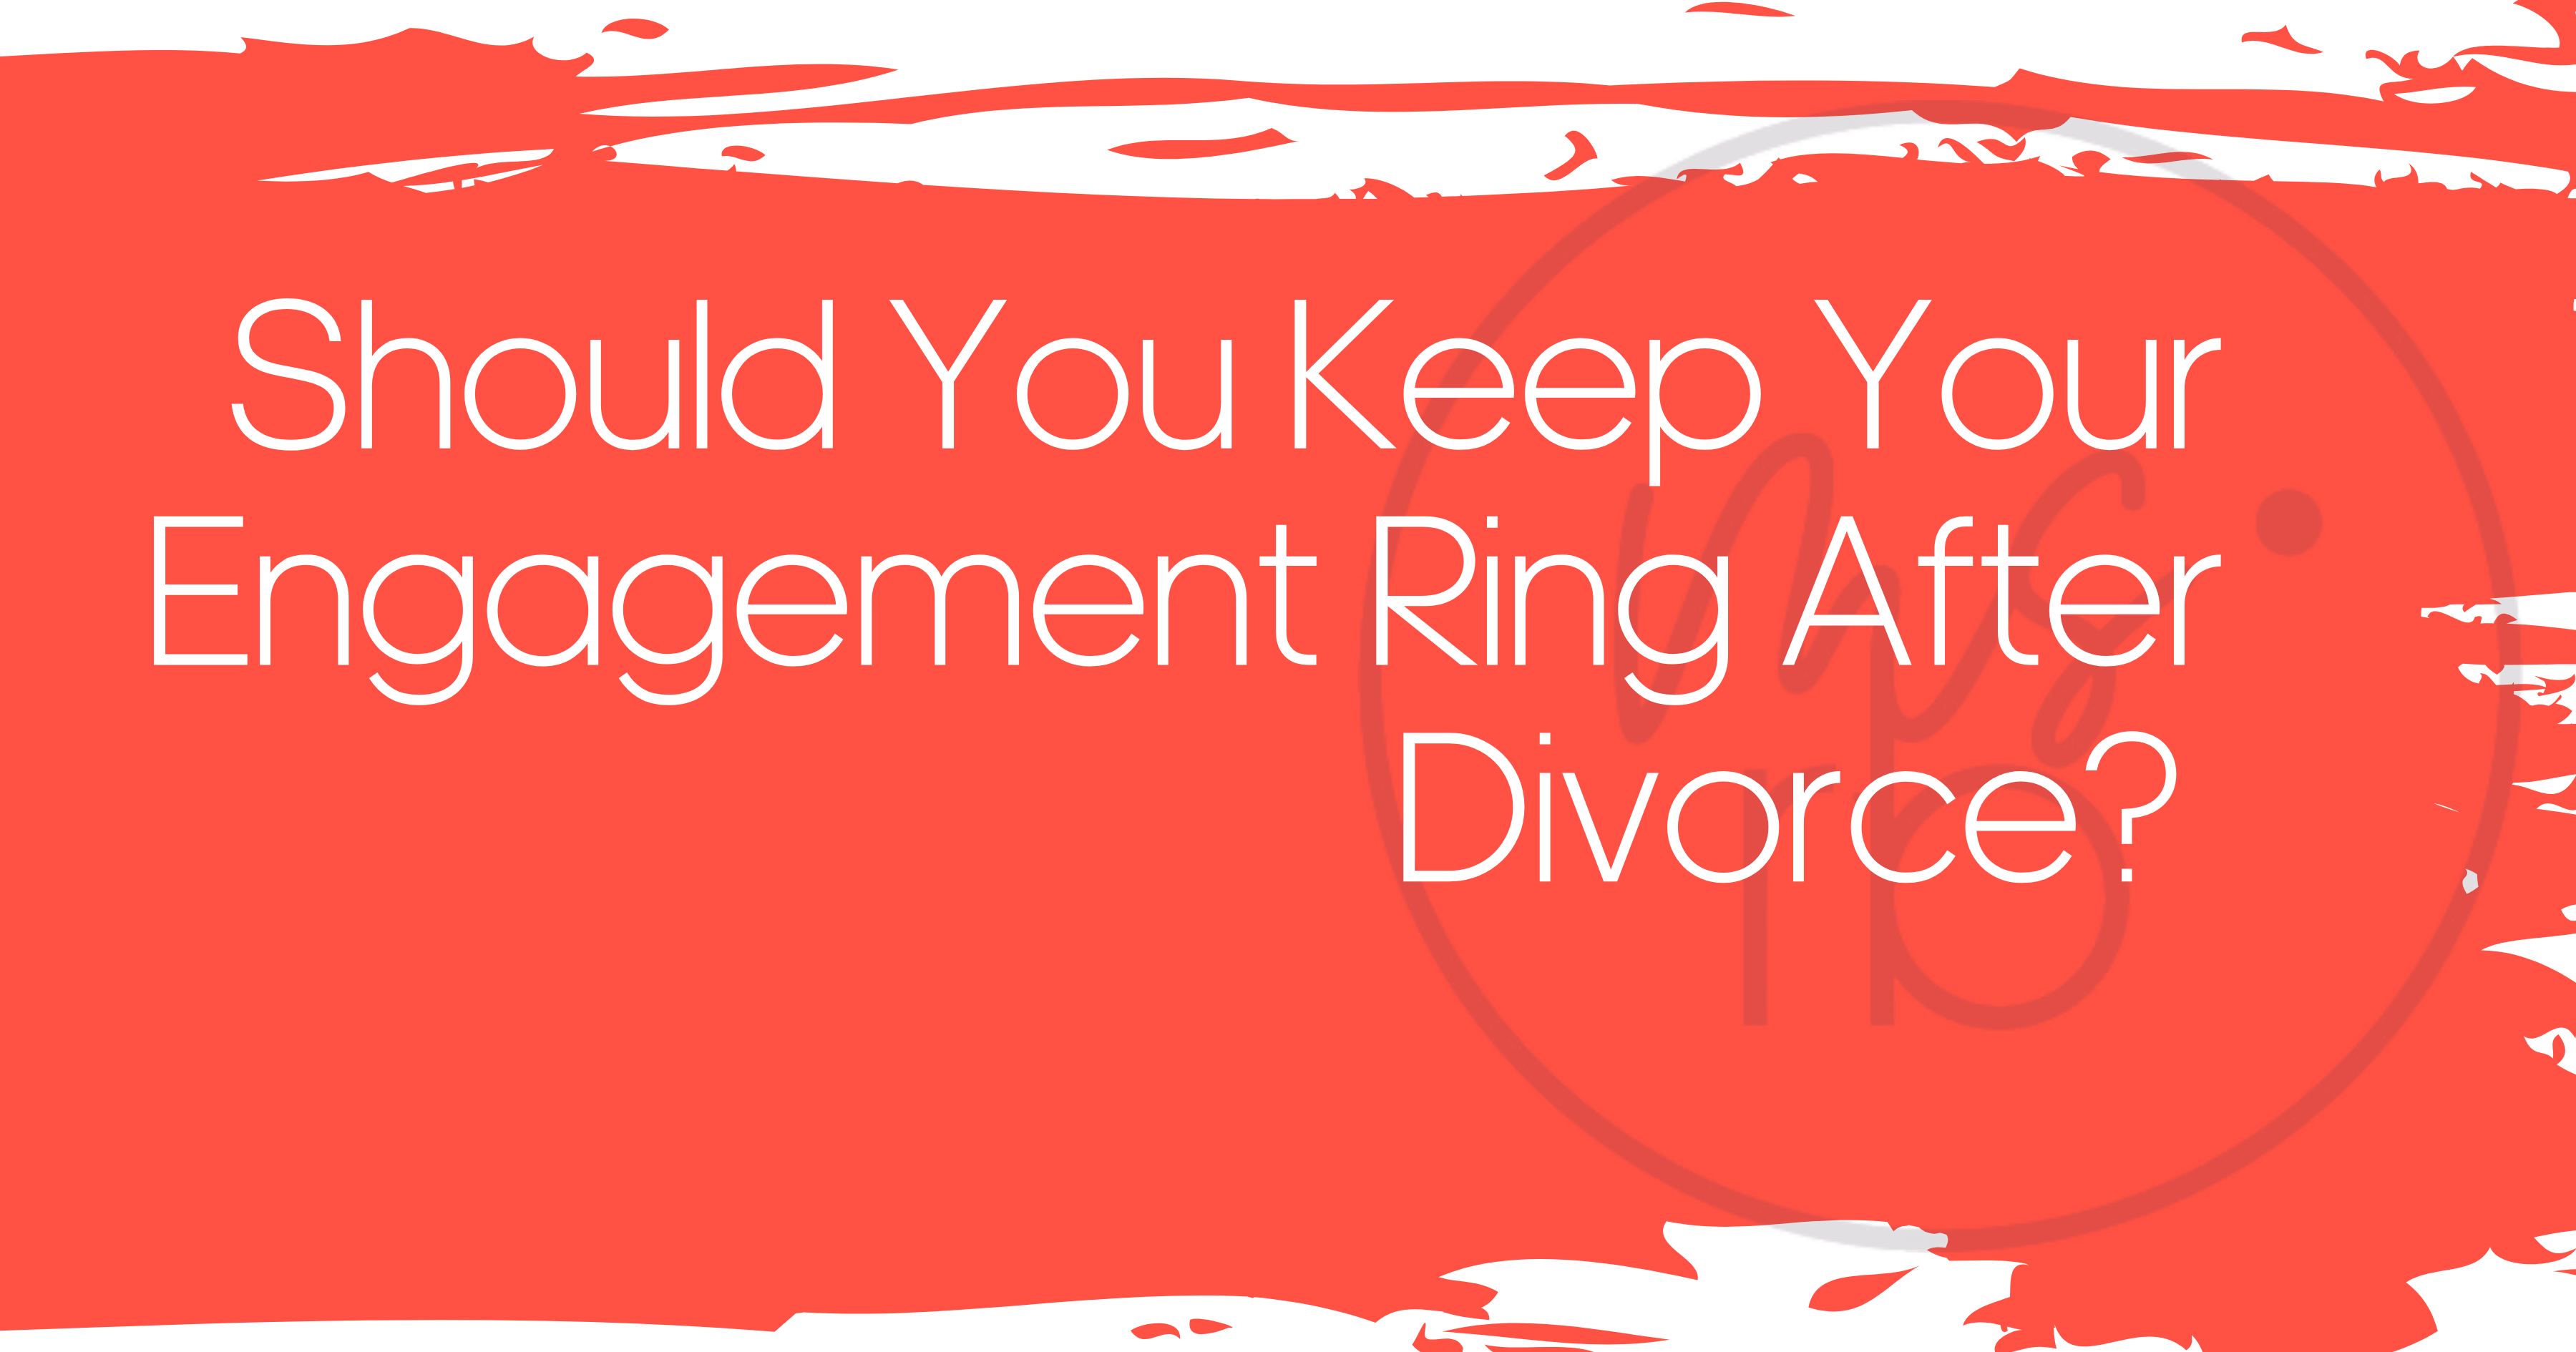 Should You Keep Your Wedding Ring After a Divorce?